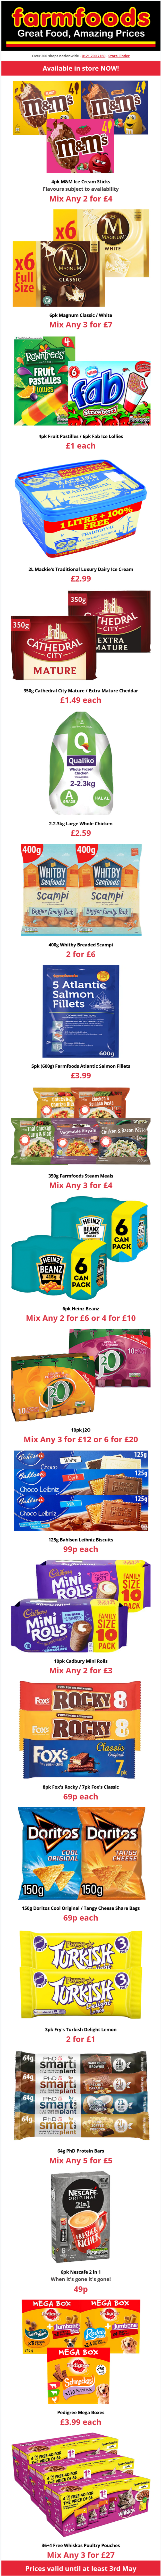 Farmfoods Offers from 3/5/2021 Preview